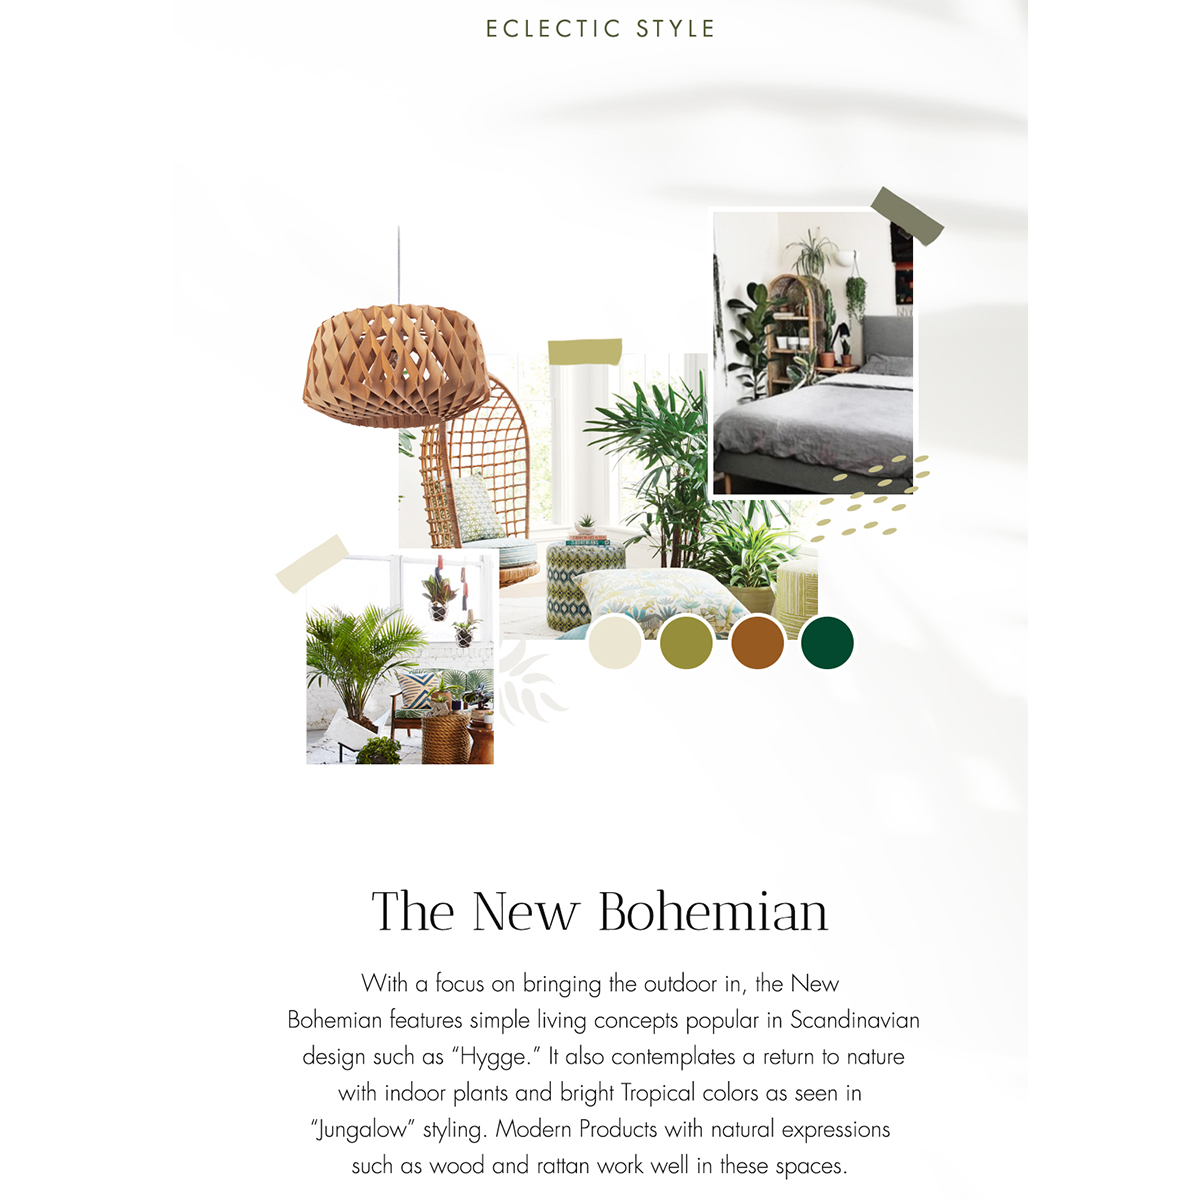 Eclectic - The New Bohemian